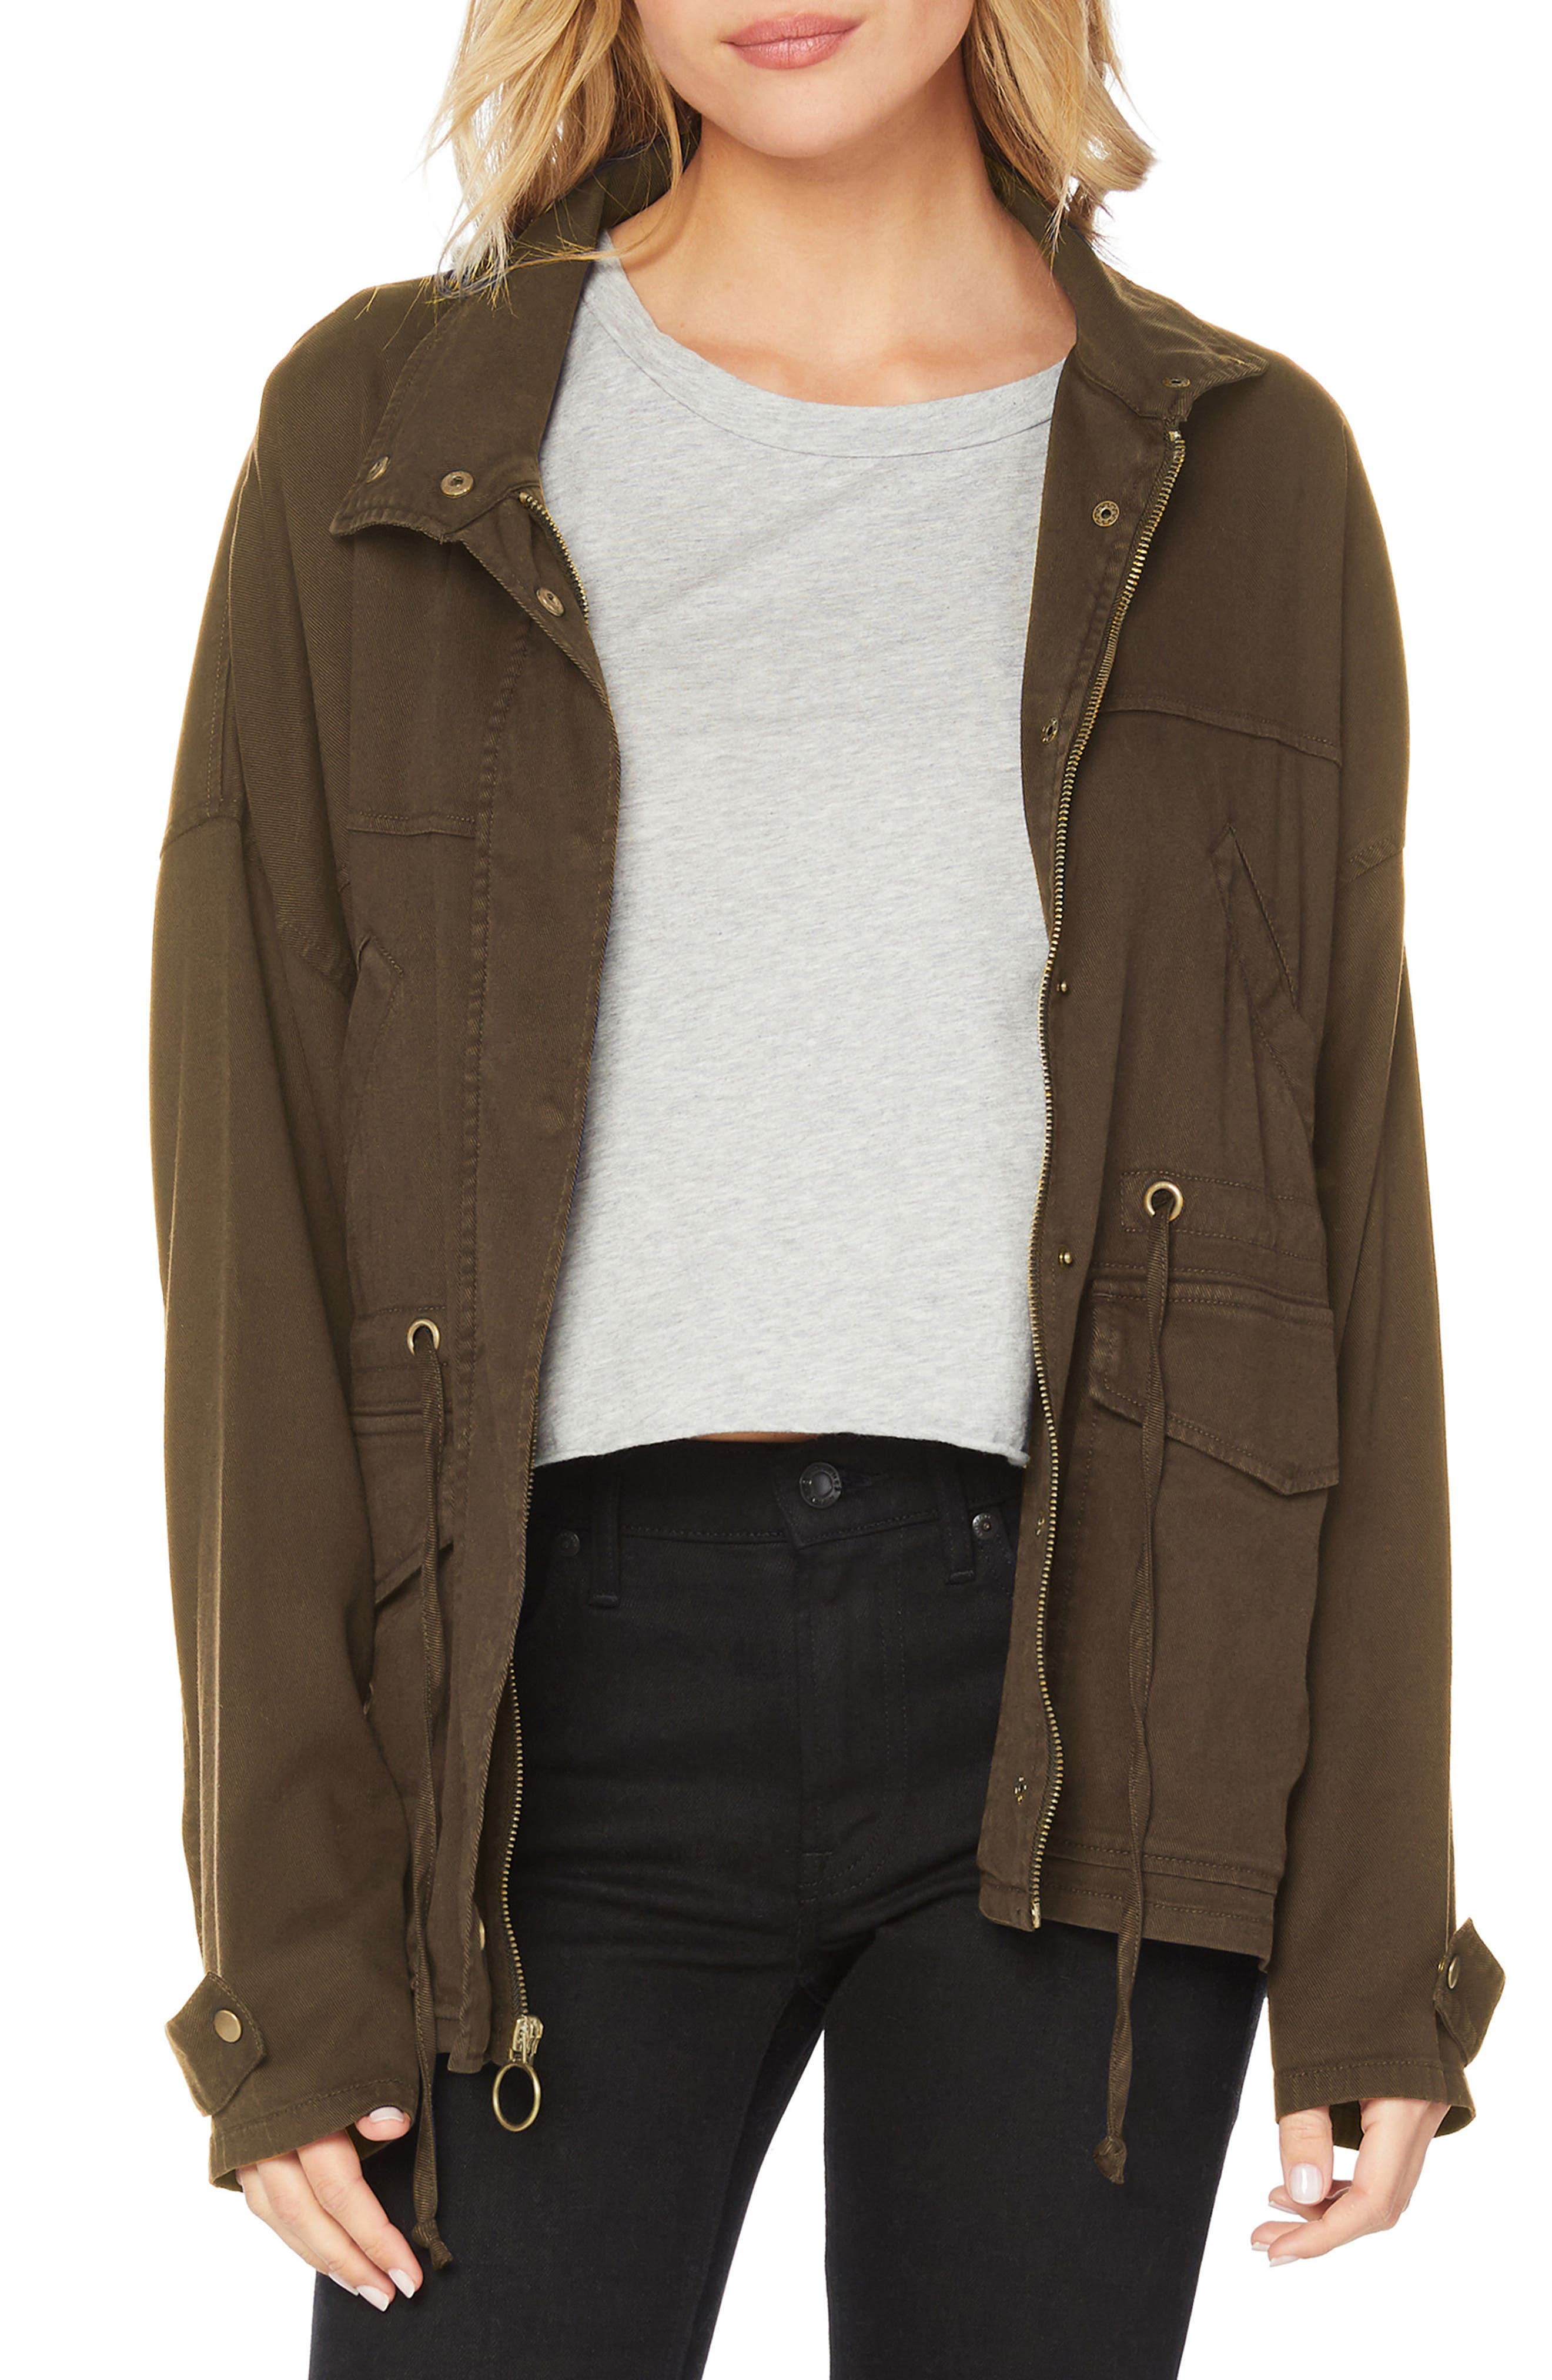 MICHAEL STARS Stretch Twill Military Jacket in Loden